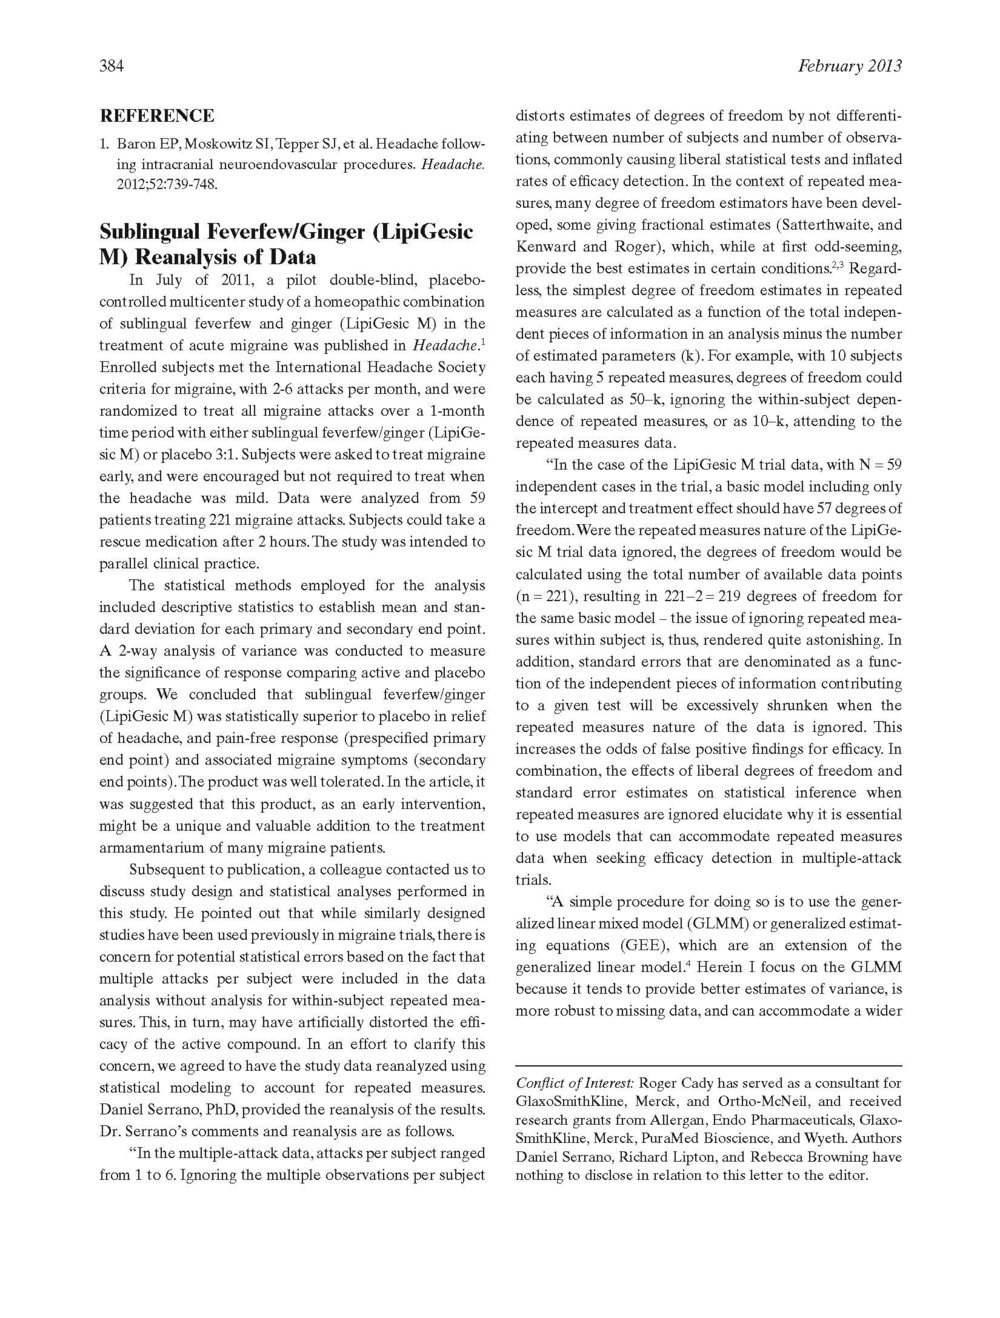 REANALYSIS ARTICLE_Page_1.jpg